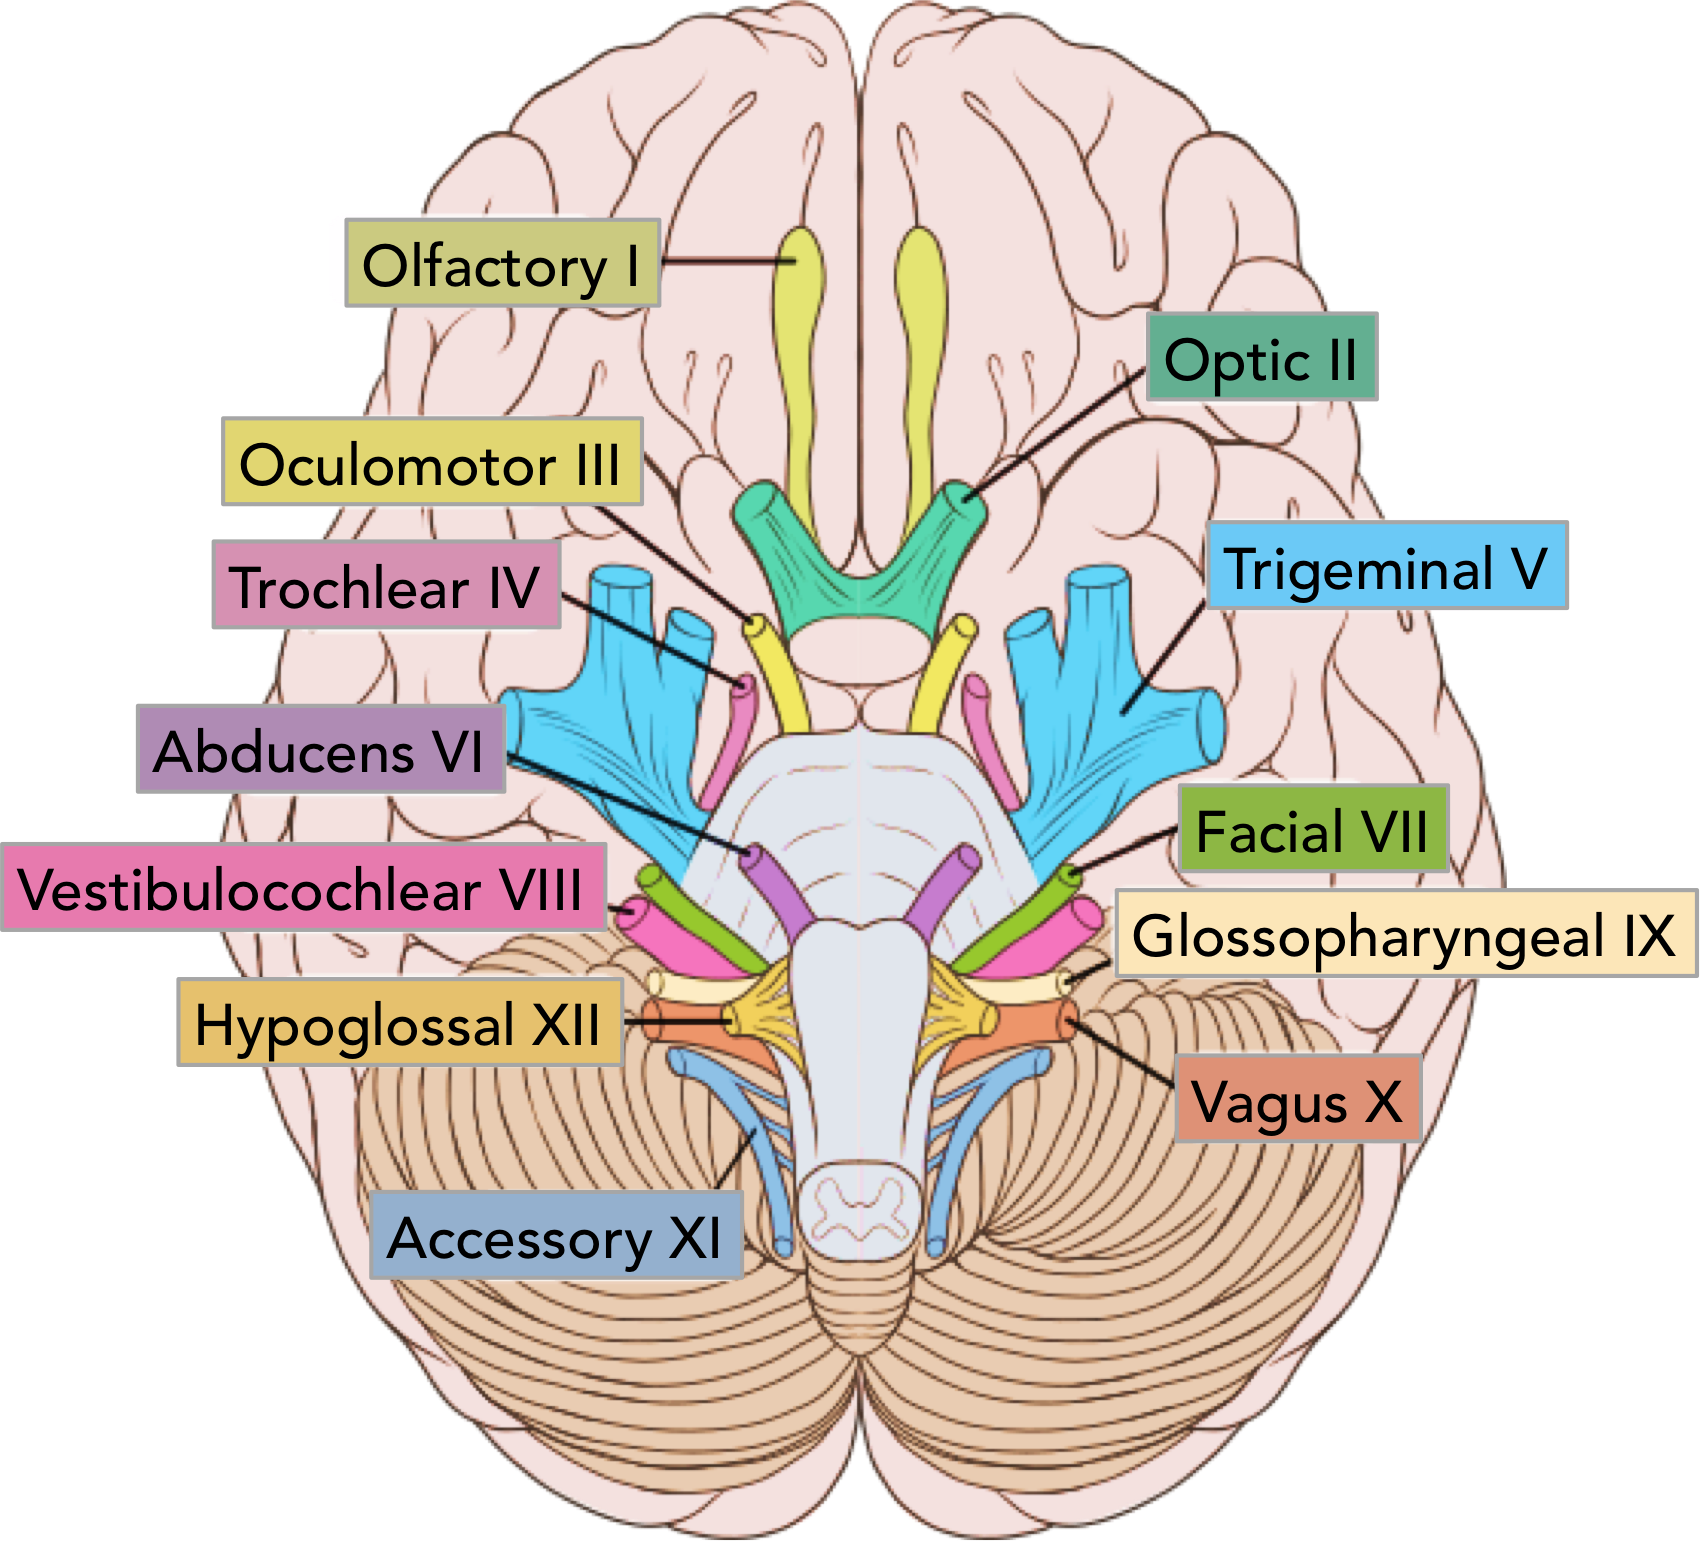 Figure 1 - The location of the cranial nerves on the cerebrum and brainstem.